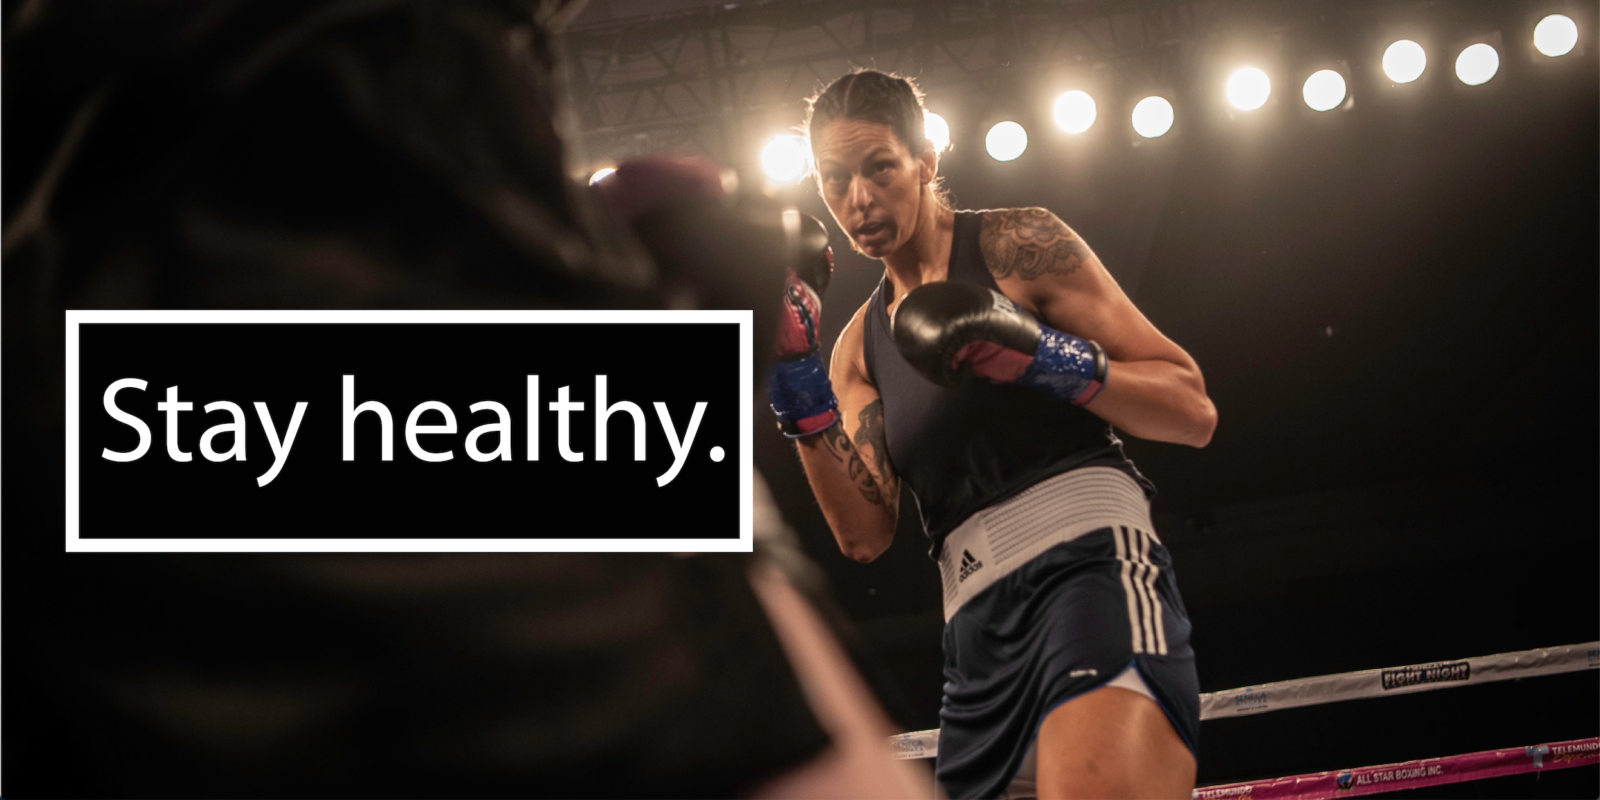 We offer the largest selection of MMA and Fitness classes in the area.